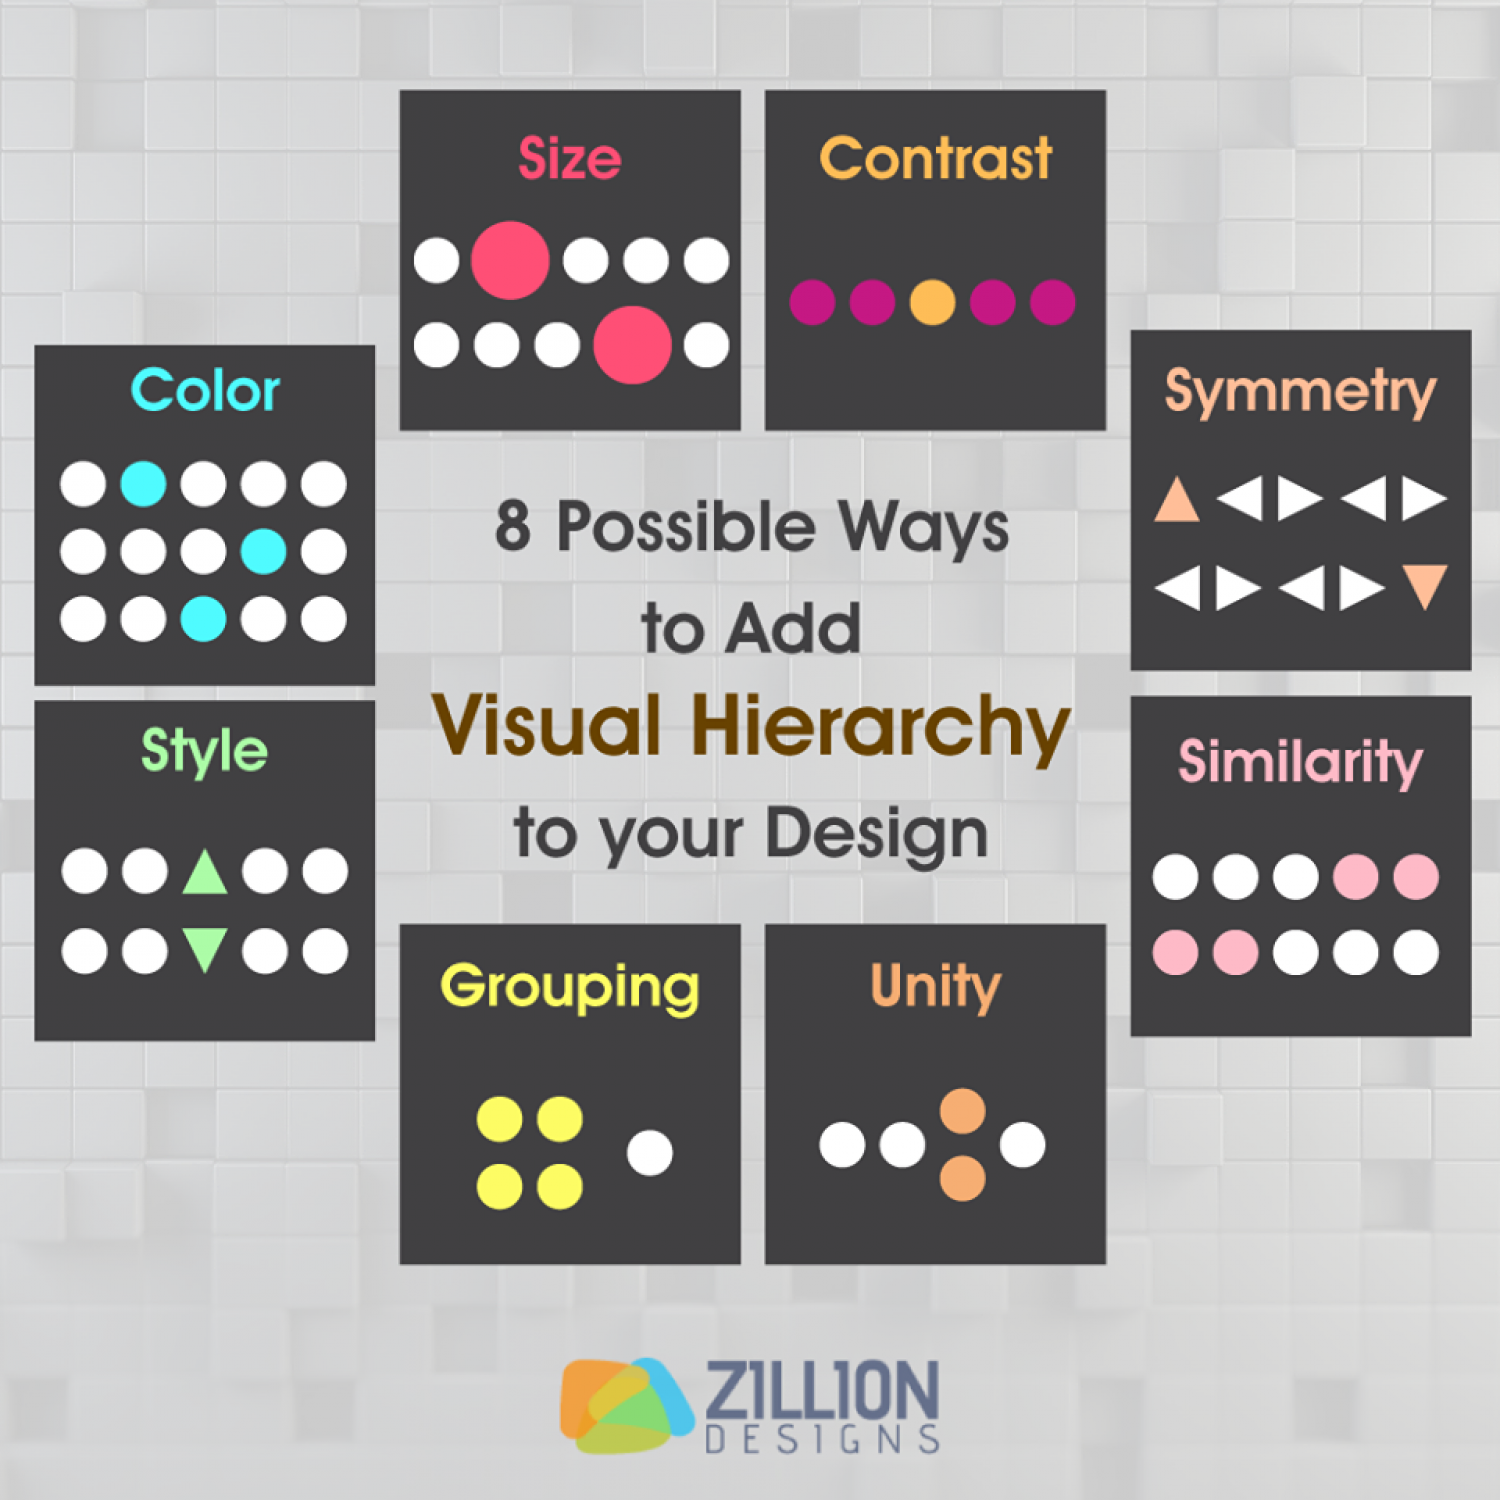 8 Possible Ways to Add Visual Hierarchy to Your Design Infographic